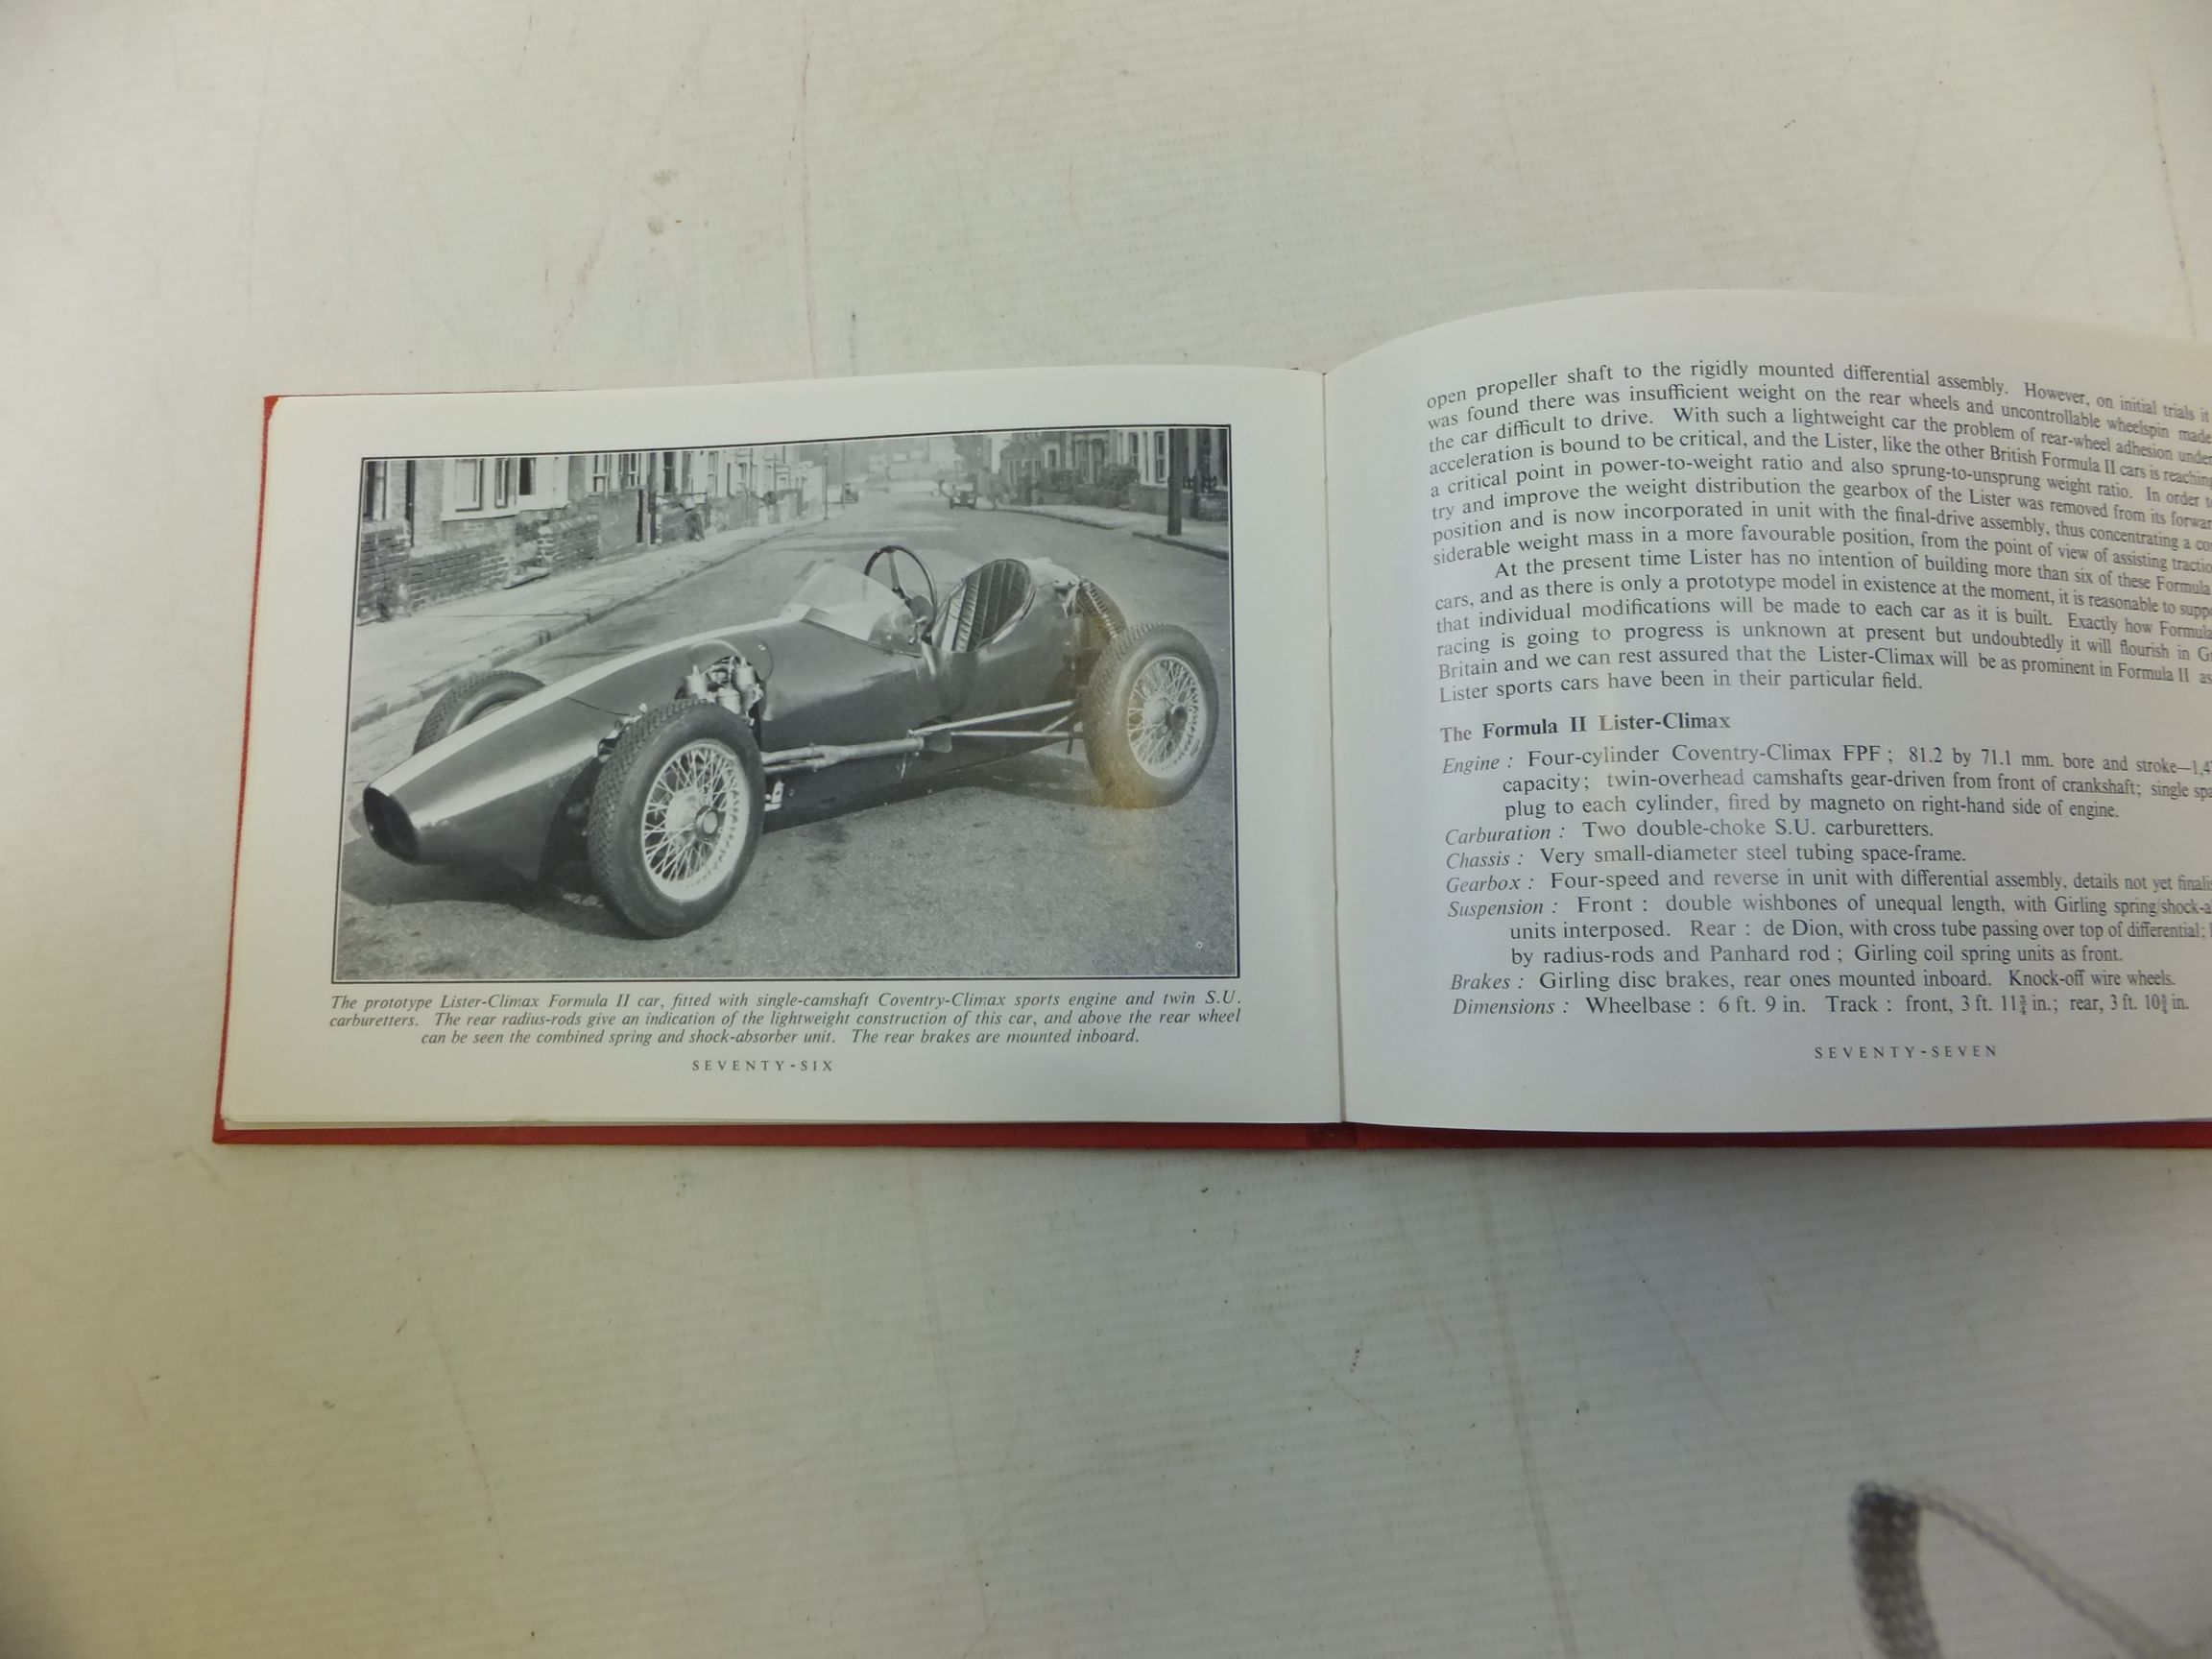 Photo of MOTOR SPORT RACING CAR REVIEW 1957 written by Jenkinson, Denis published by Grenville Publishing Company Limited (STOCK CODE: 1712194)  for sale by Stella & Rose's Books